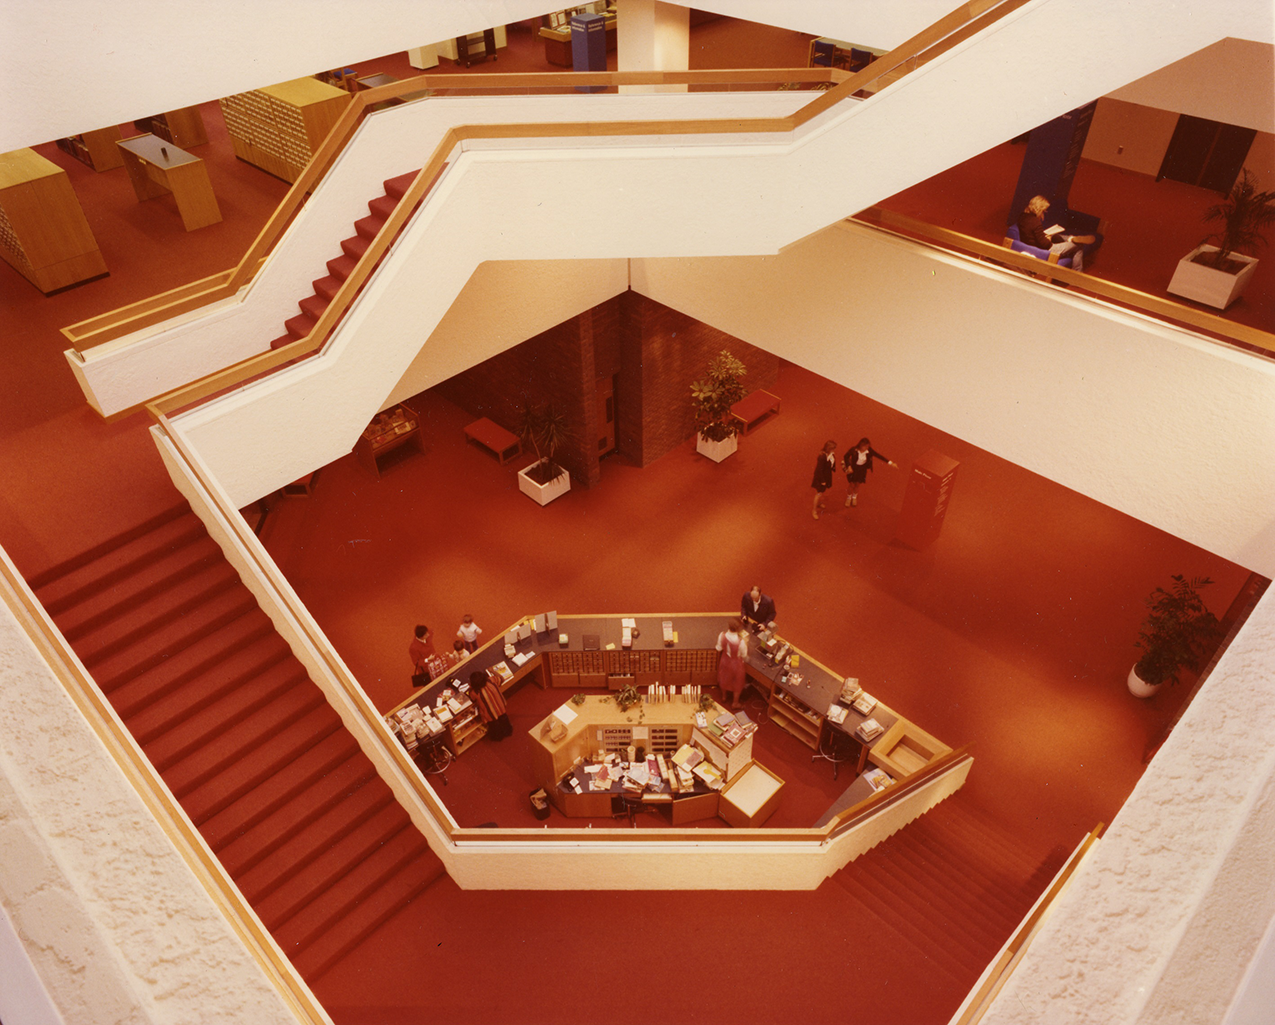 Interior shot of the Atrium's staircase